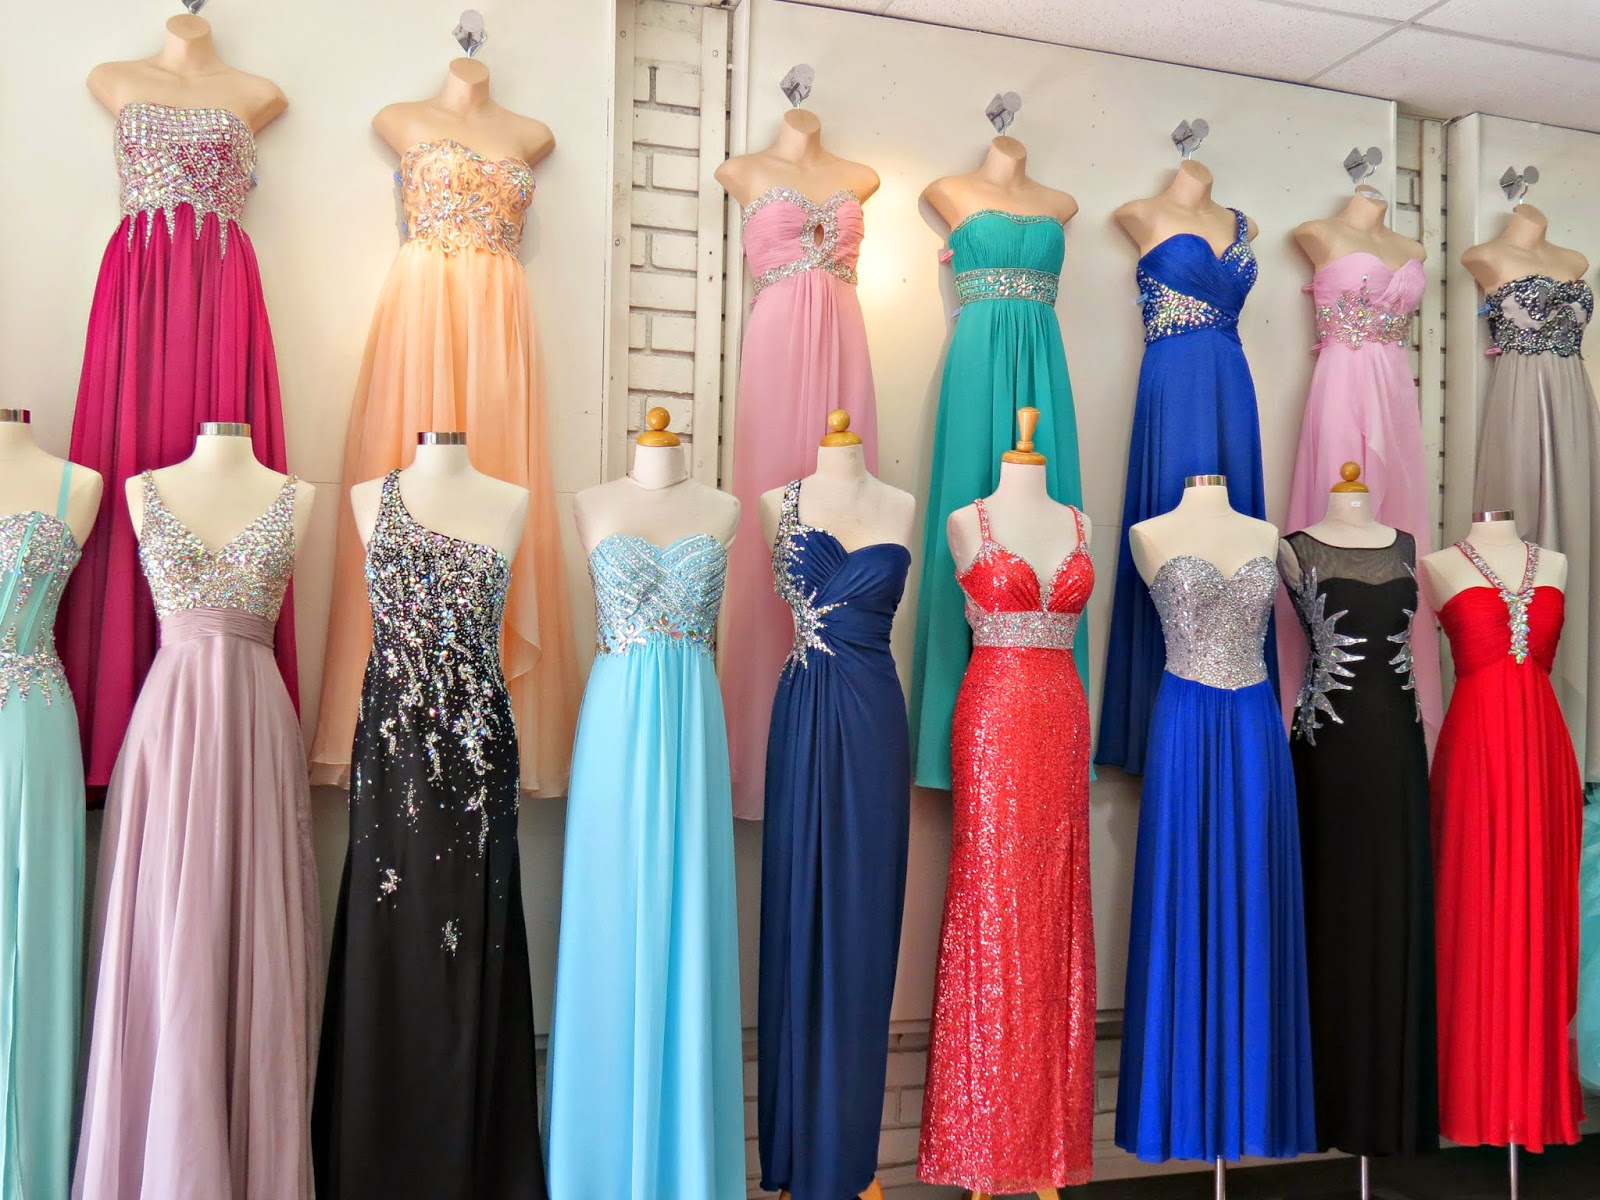 Gowns in downtown los angeles - Prom Dresses Los Angeles Stores 14